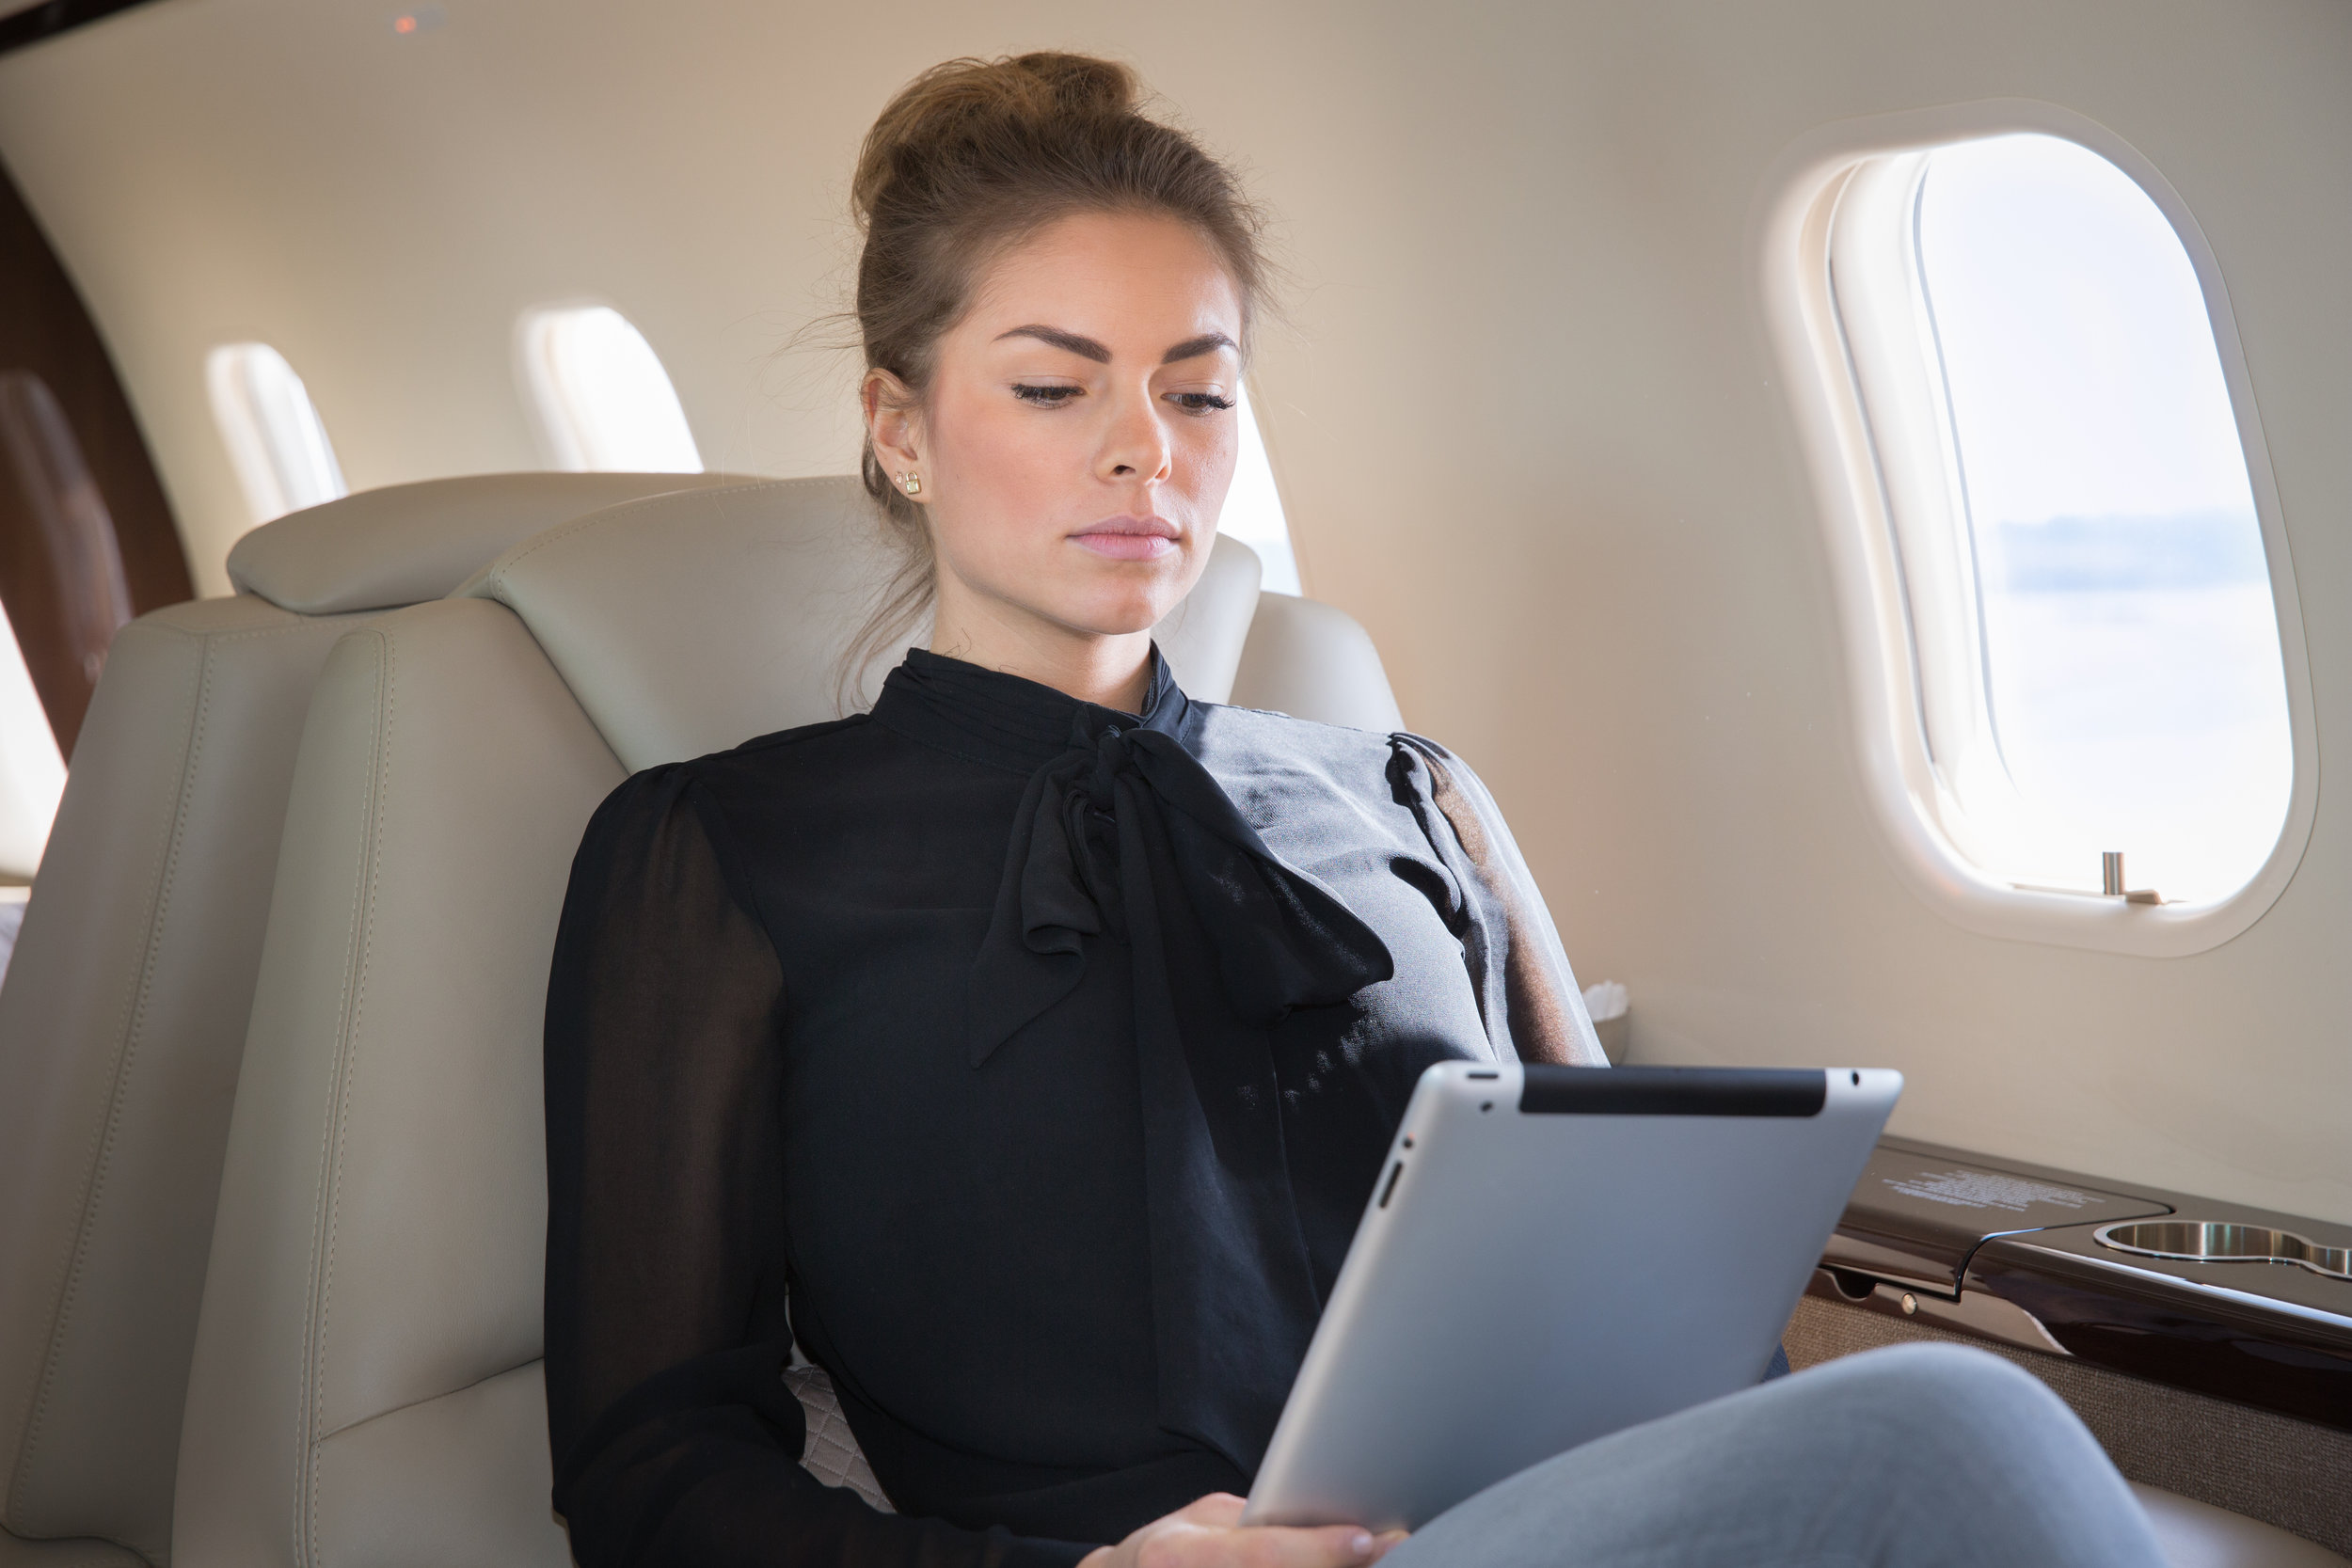 Onboard WiFI? Check. - Be connected while you fly. WiFi available upon request.